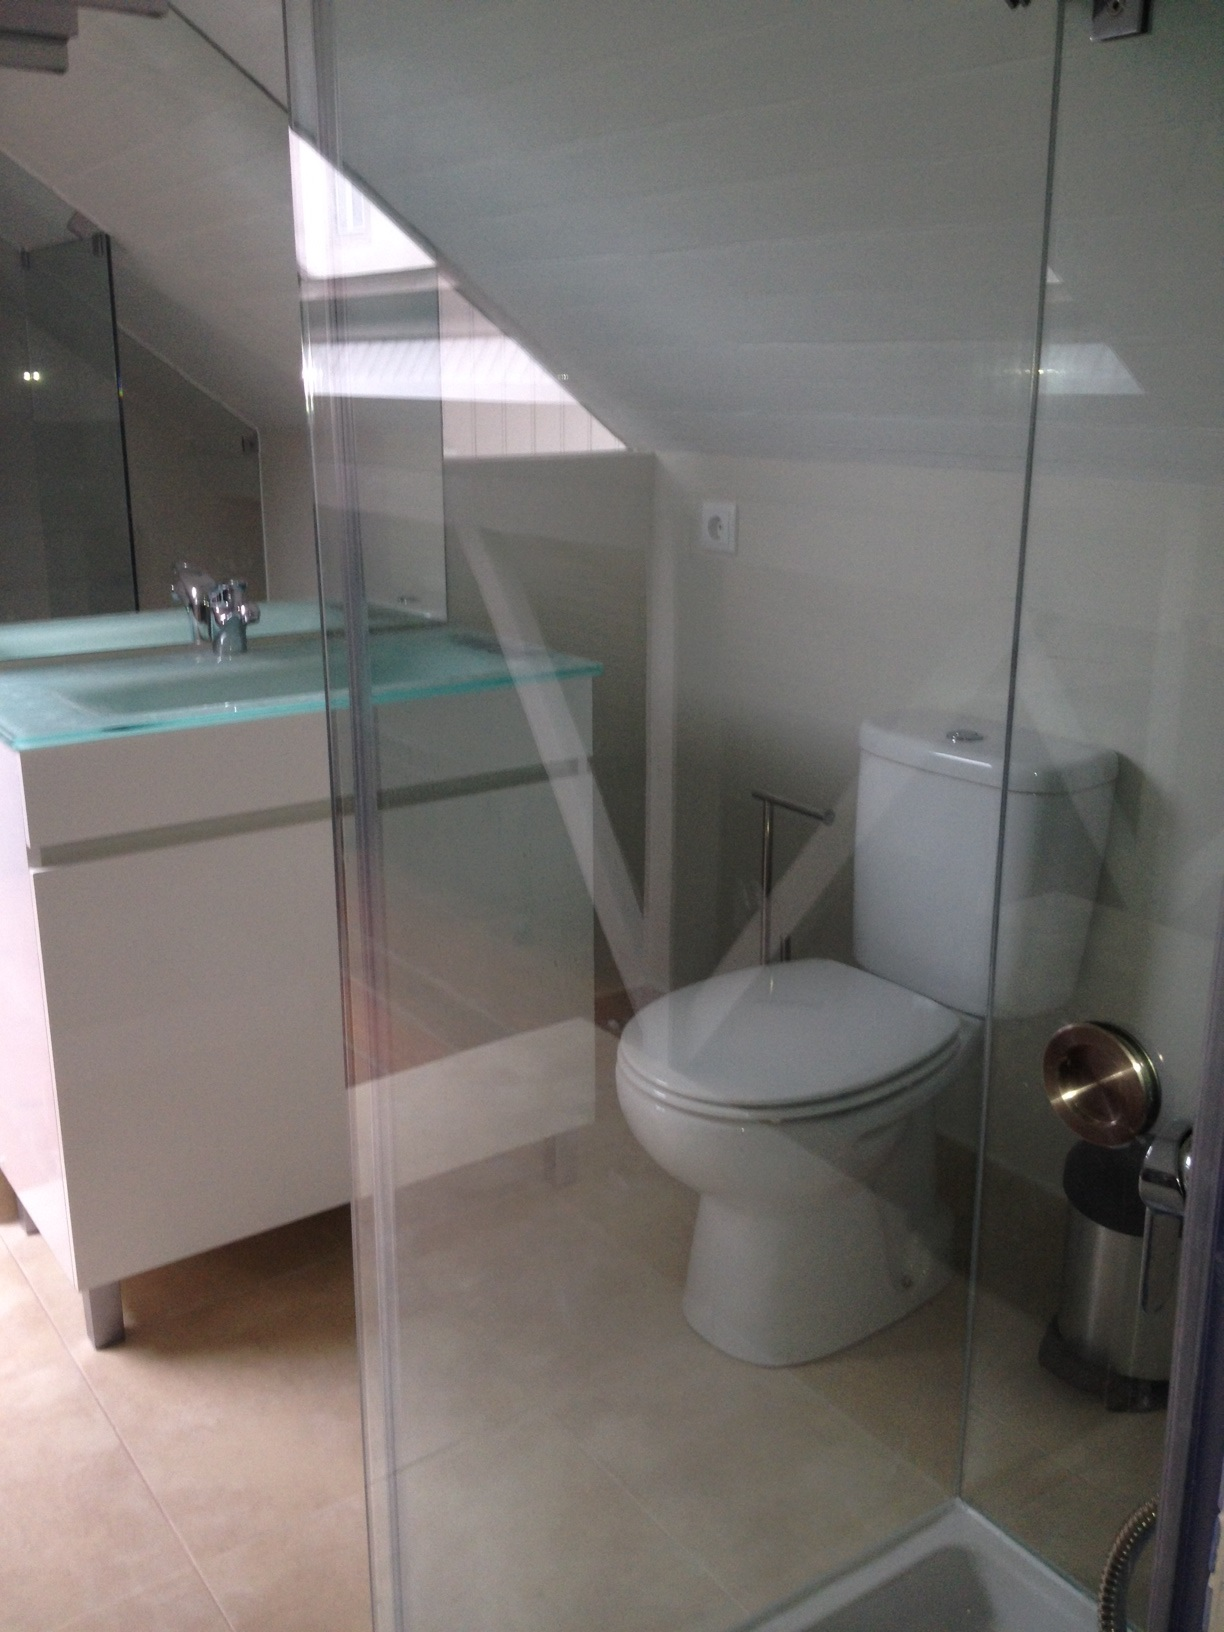 Laurel Luxury's top floor bathroom, a work of modern architecture